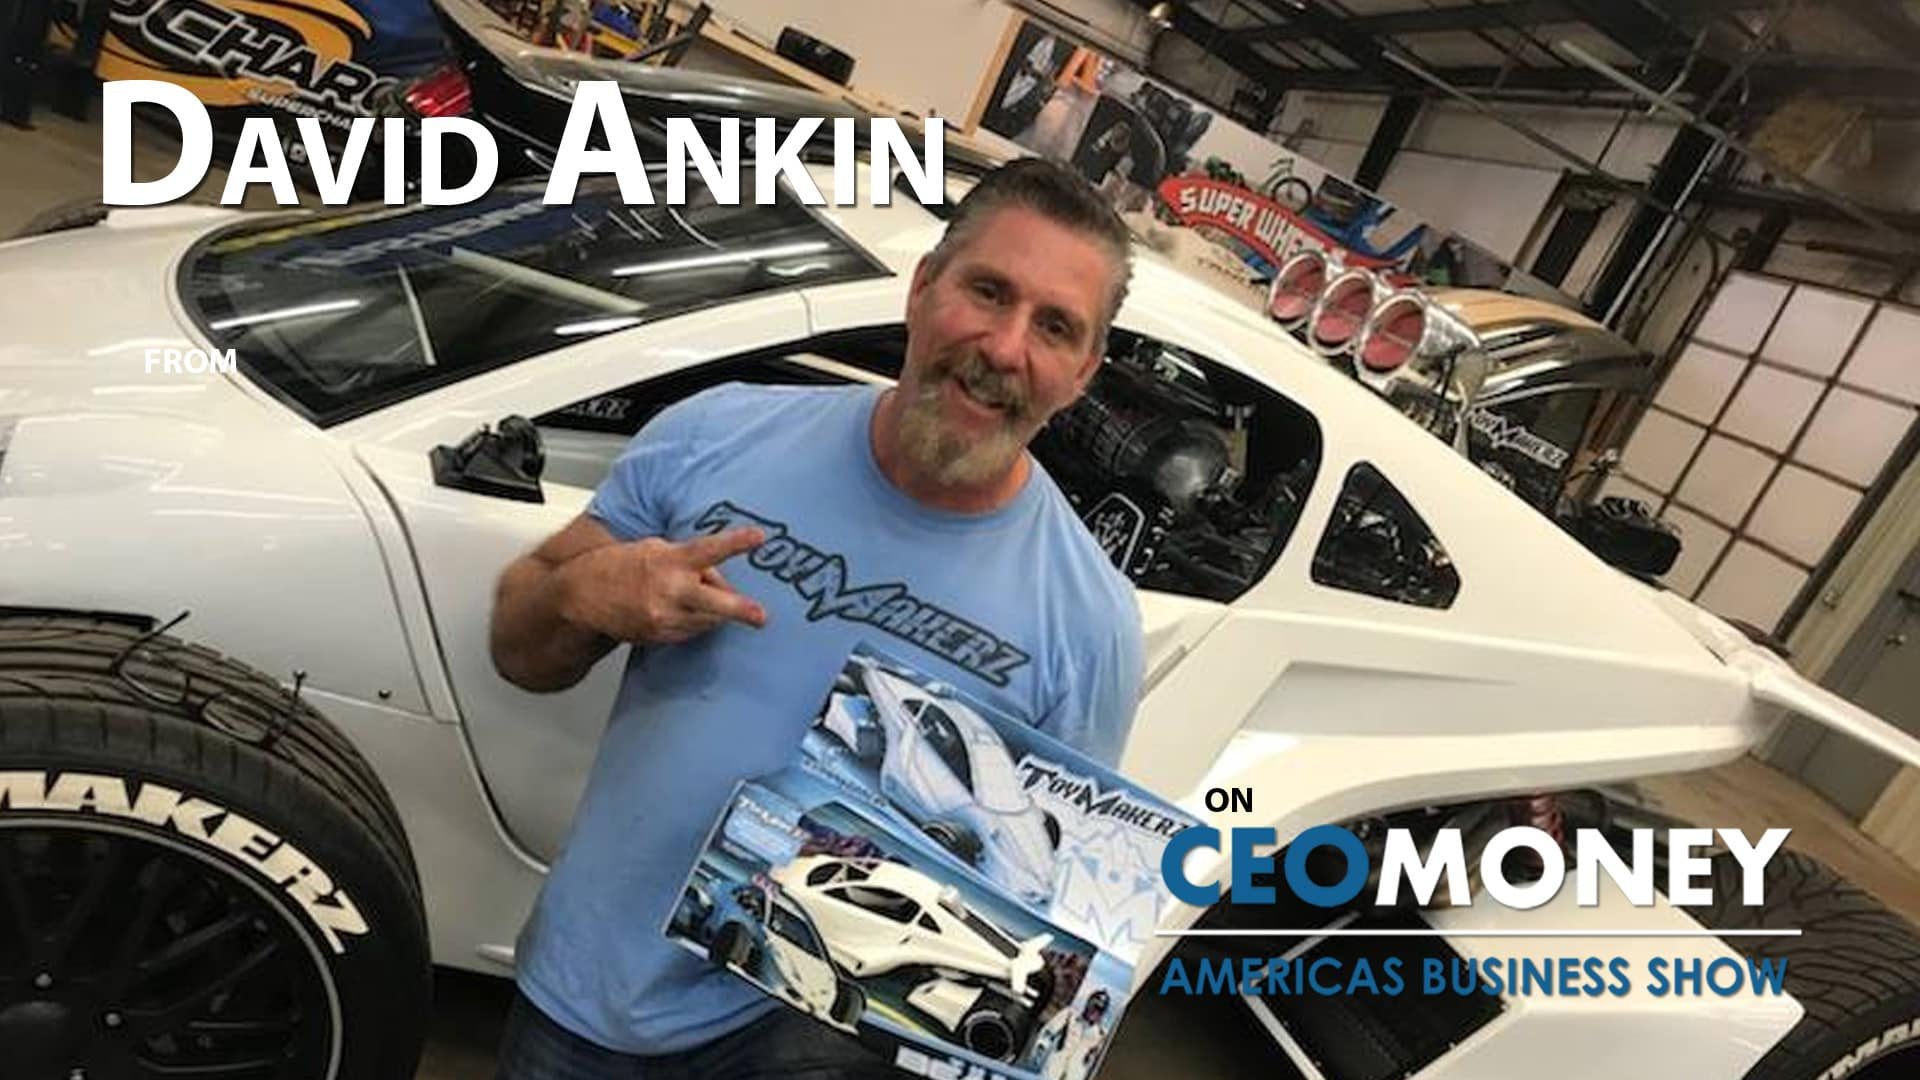 David Ankin from Toymakerz on how he turned his passion for Custom Cars into a business and TV Show